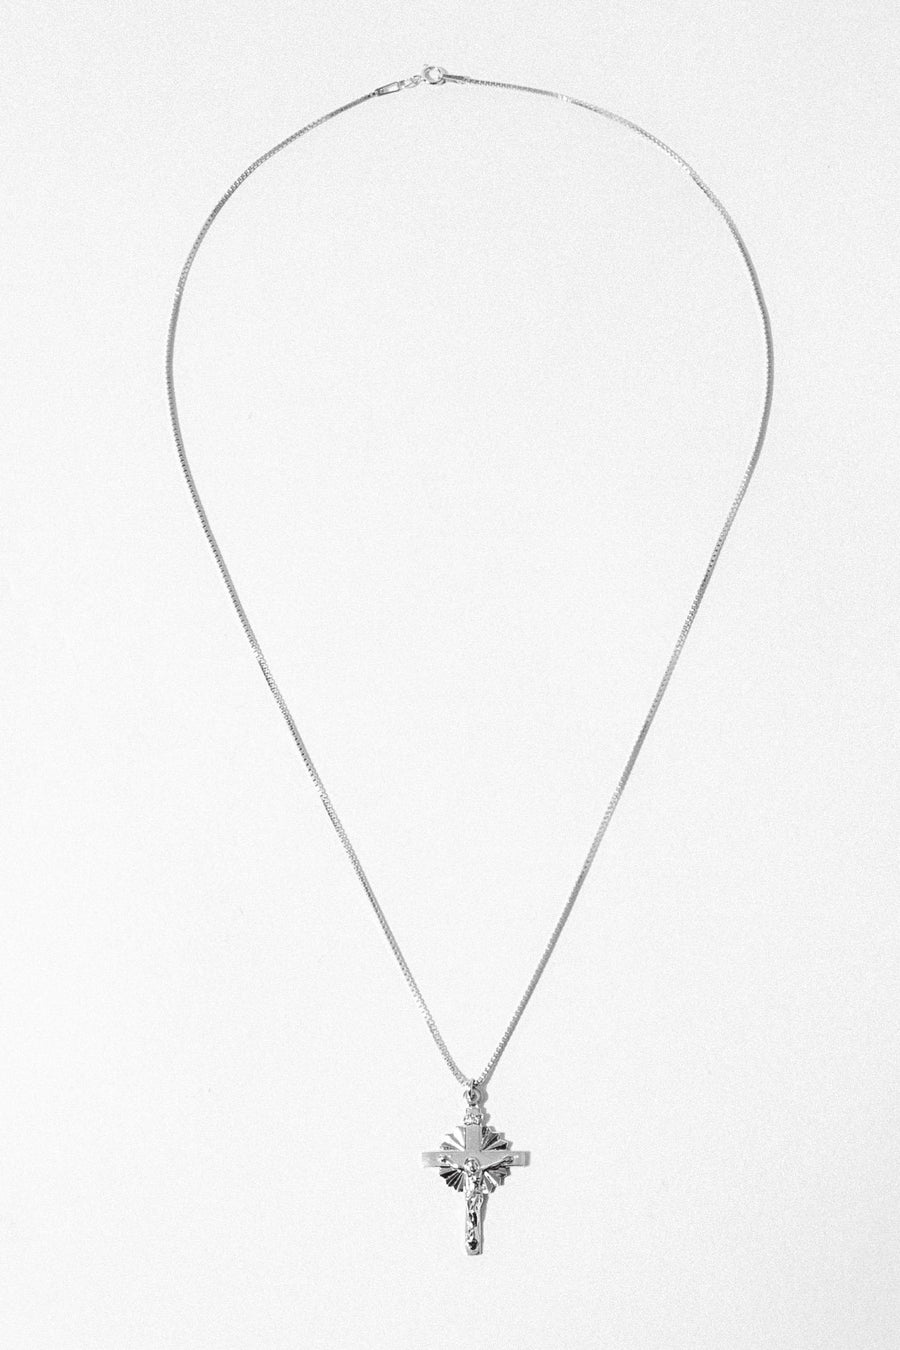 Gempacked Jewelry 20 Inches / Silver Calvary Necklace